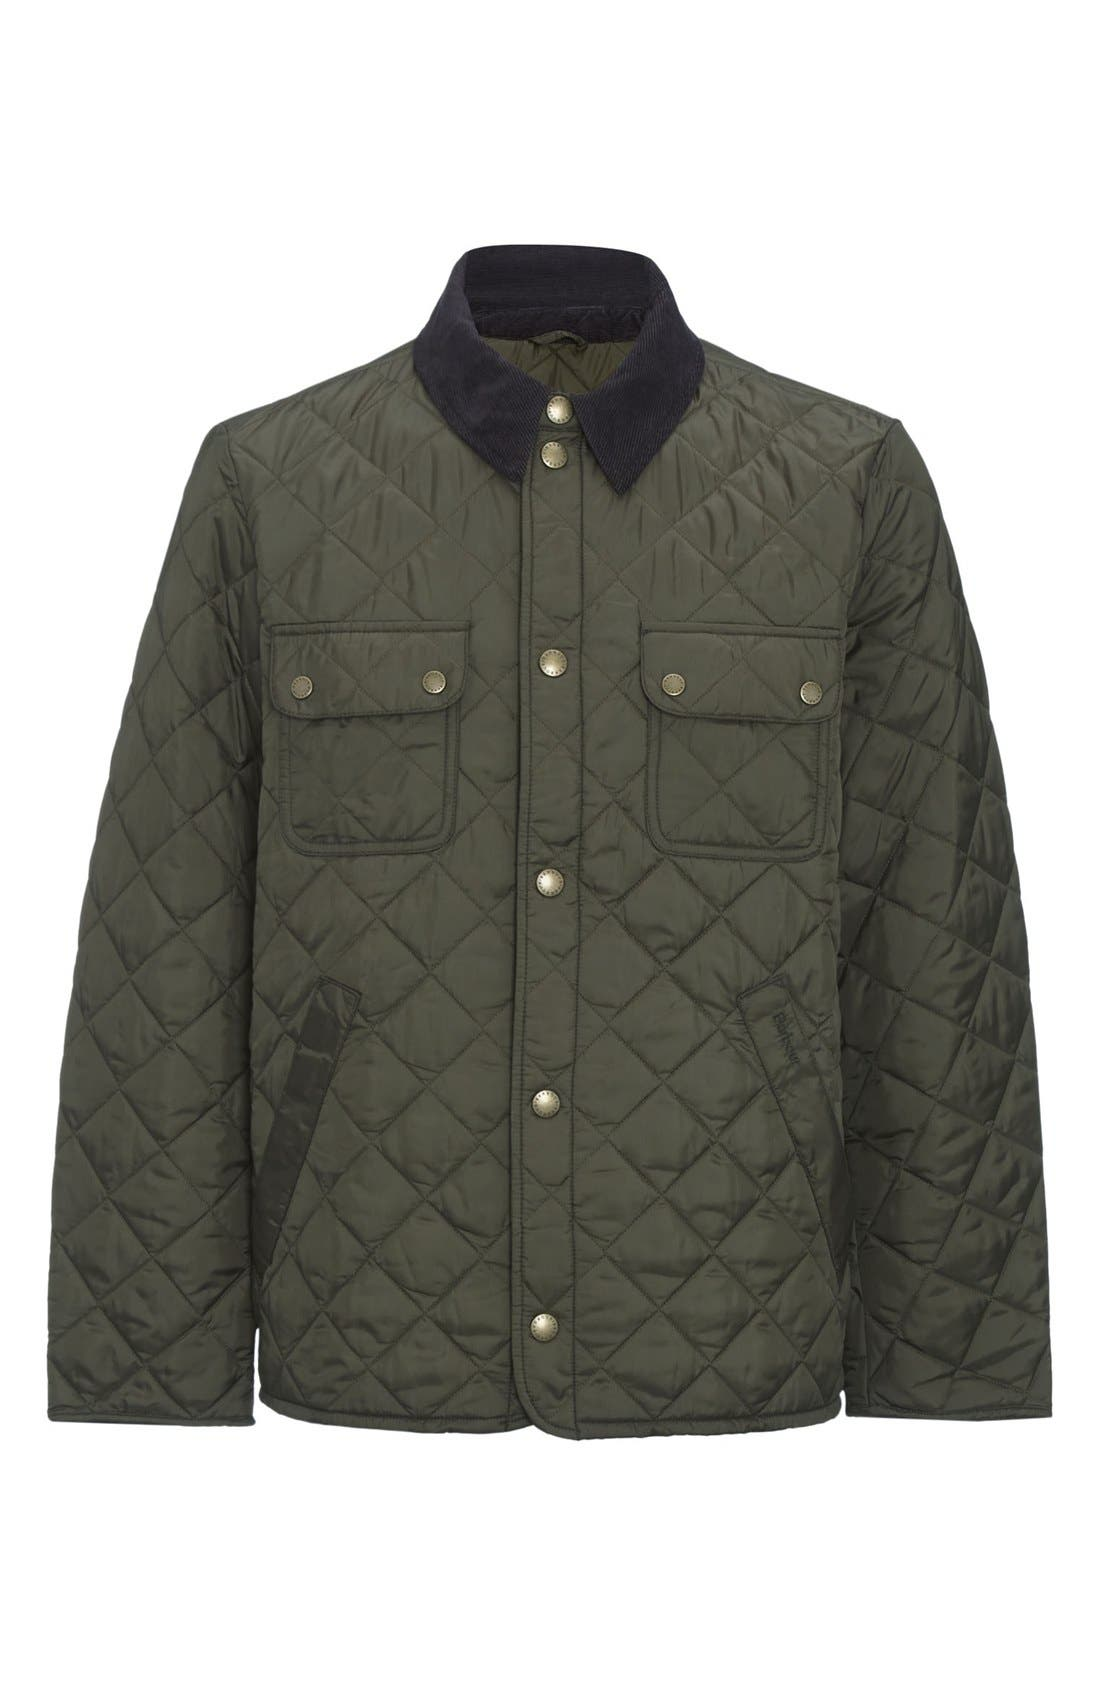 Alternate Image 2  - Barbour 'Tinford' Regular Fit Quilted Jacket